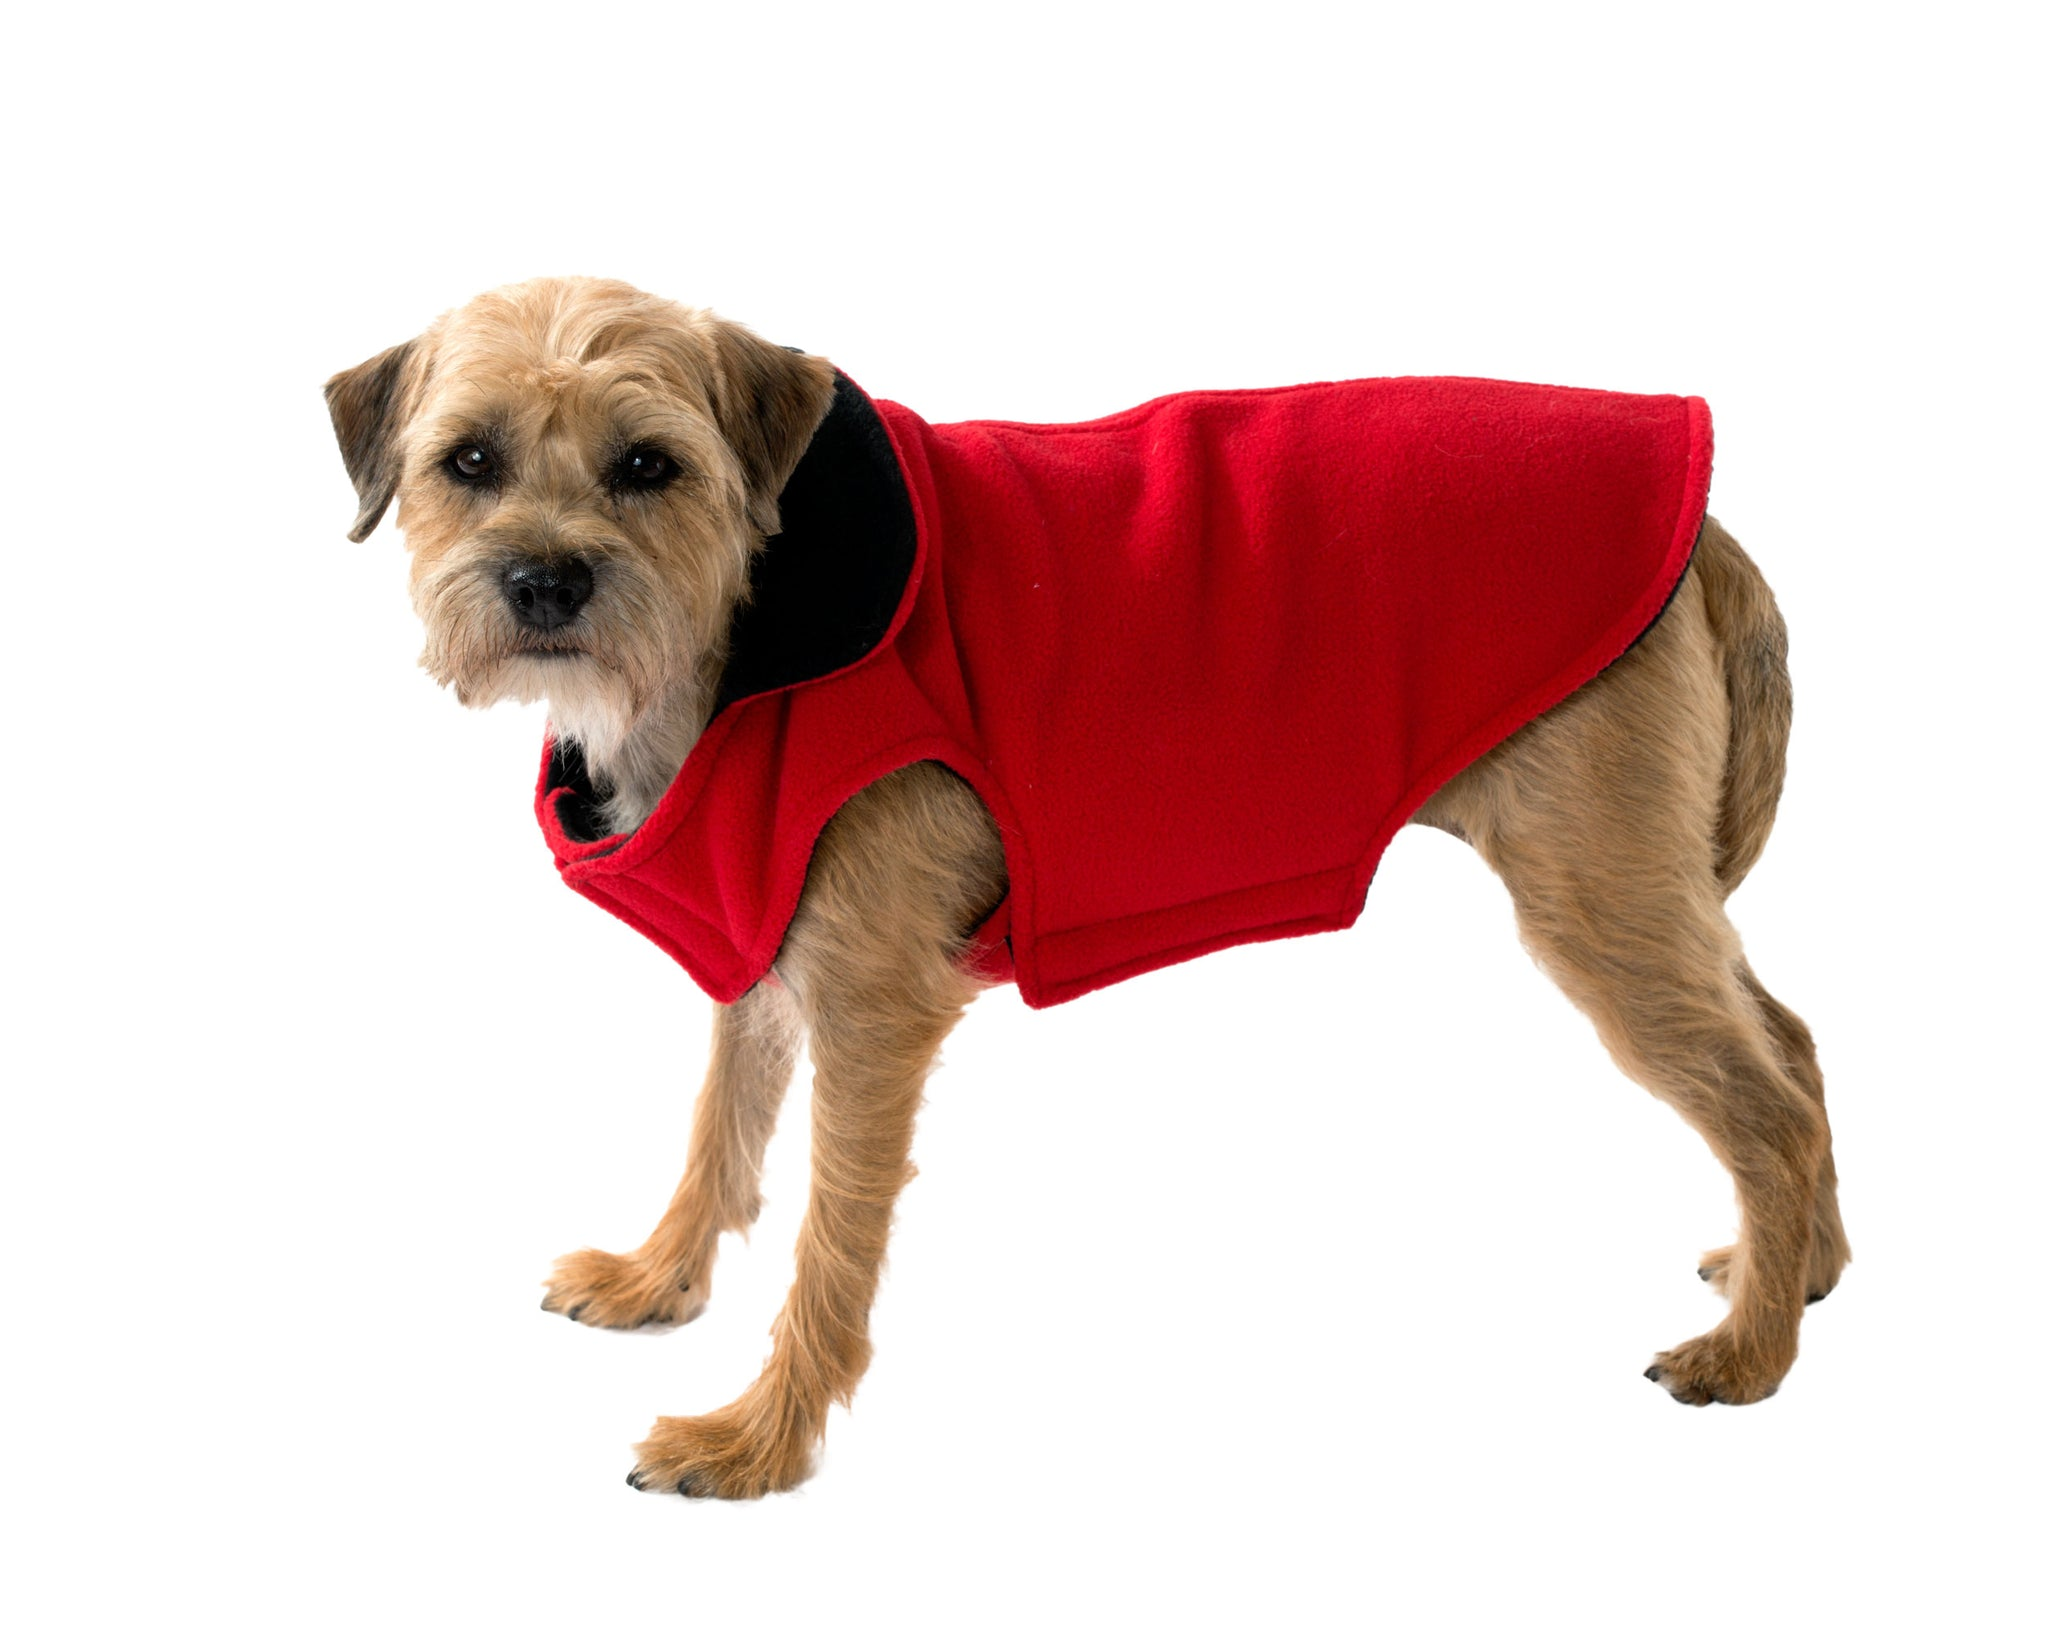 Polar Fleece - Animal Wrapper - 3 Color Options